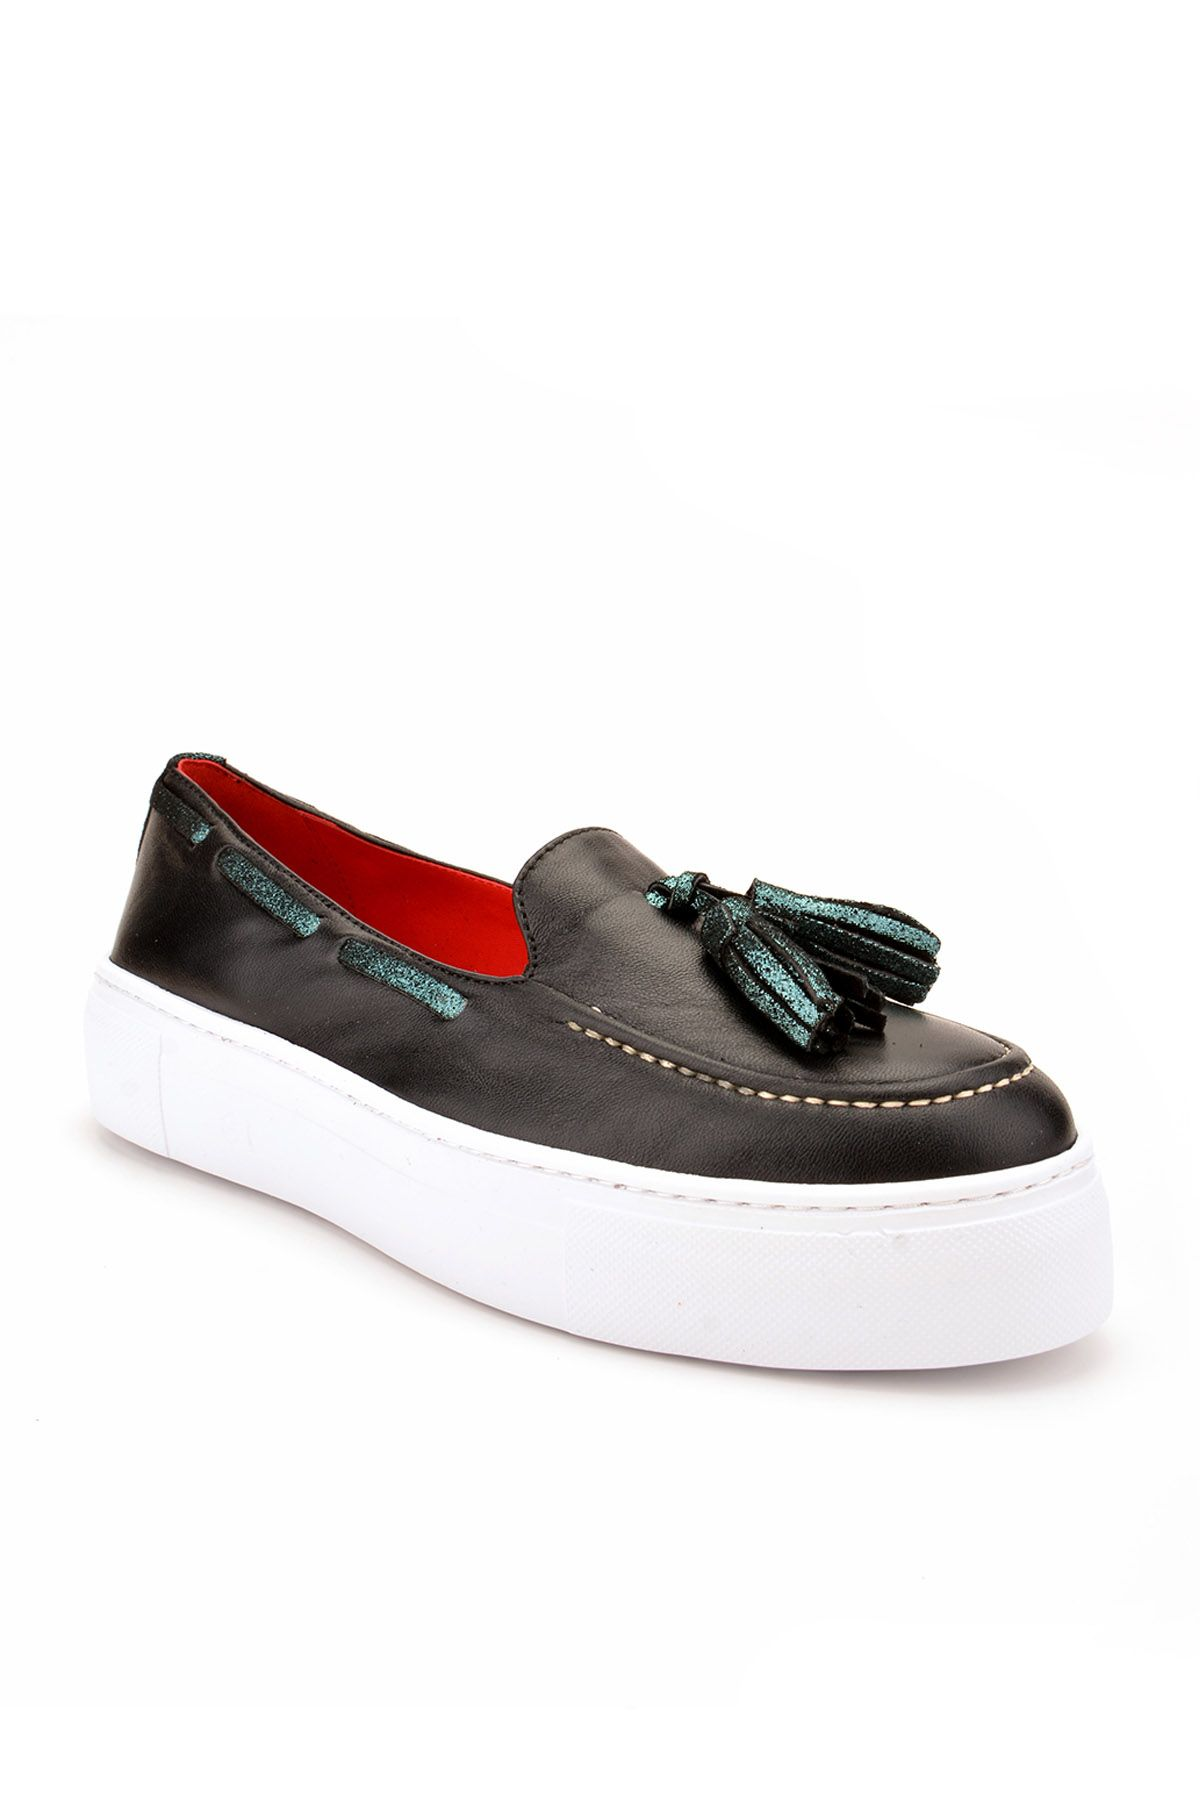 Pegia Pernety Casual Shoes From Genuine Leather REC-010 Black